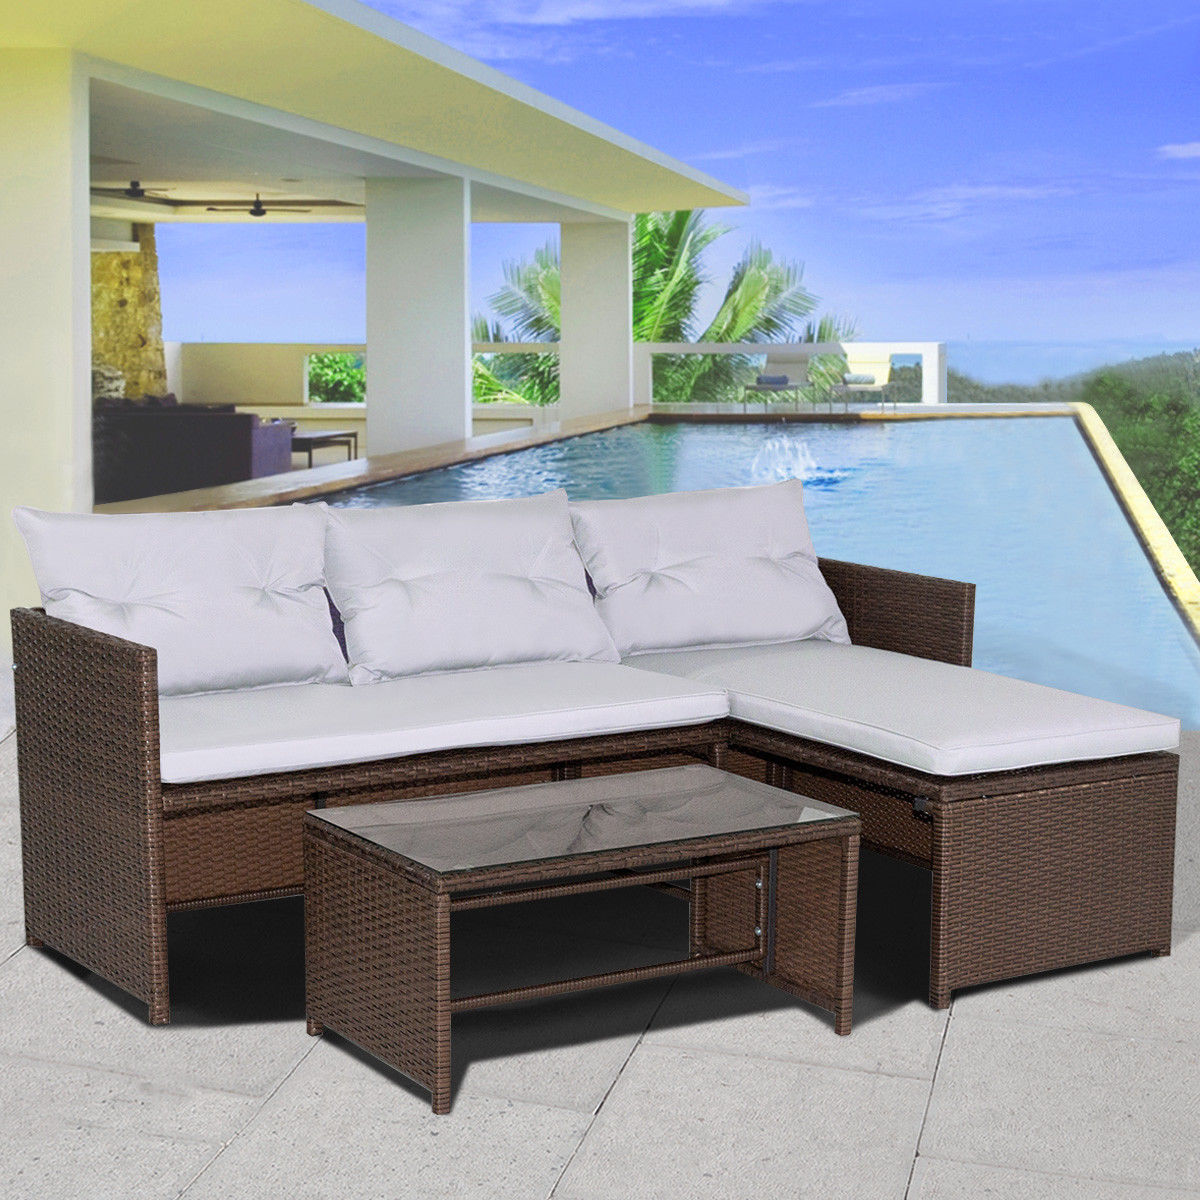 3PC Outdoor Patio Sofa Set Rattan Wicker Deck Couch Garden